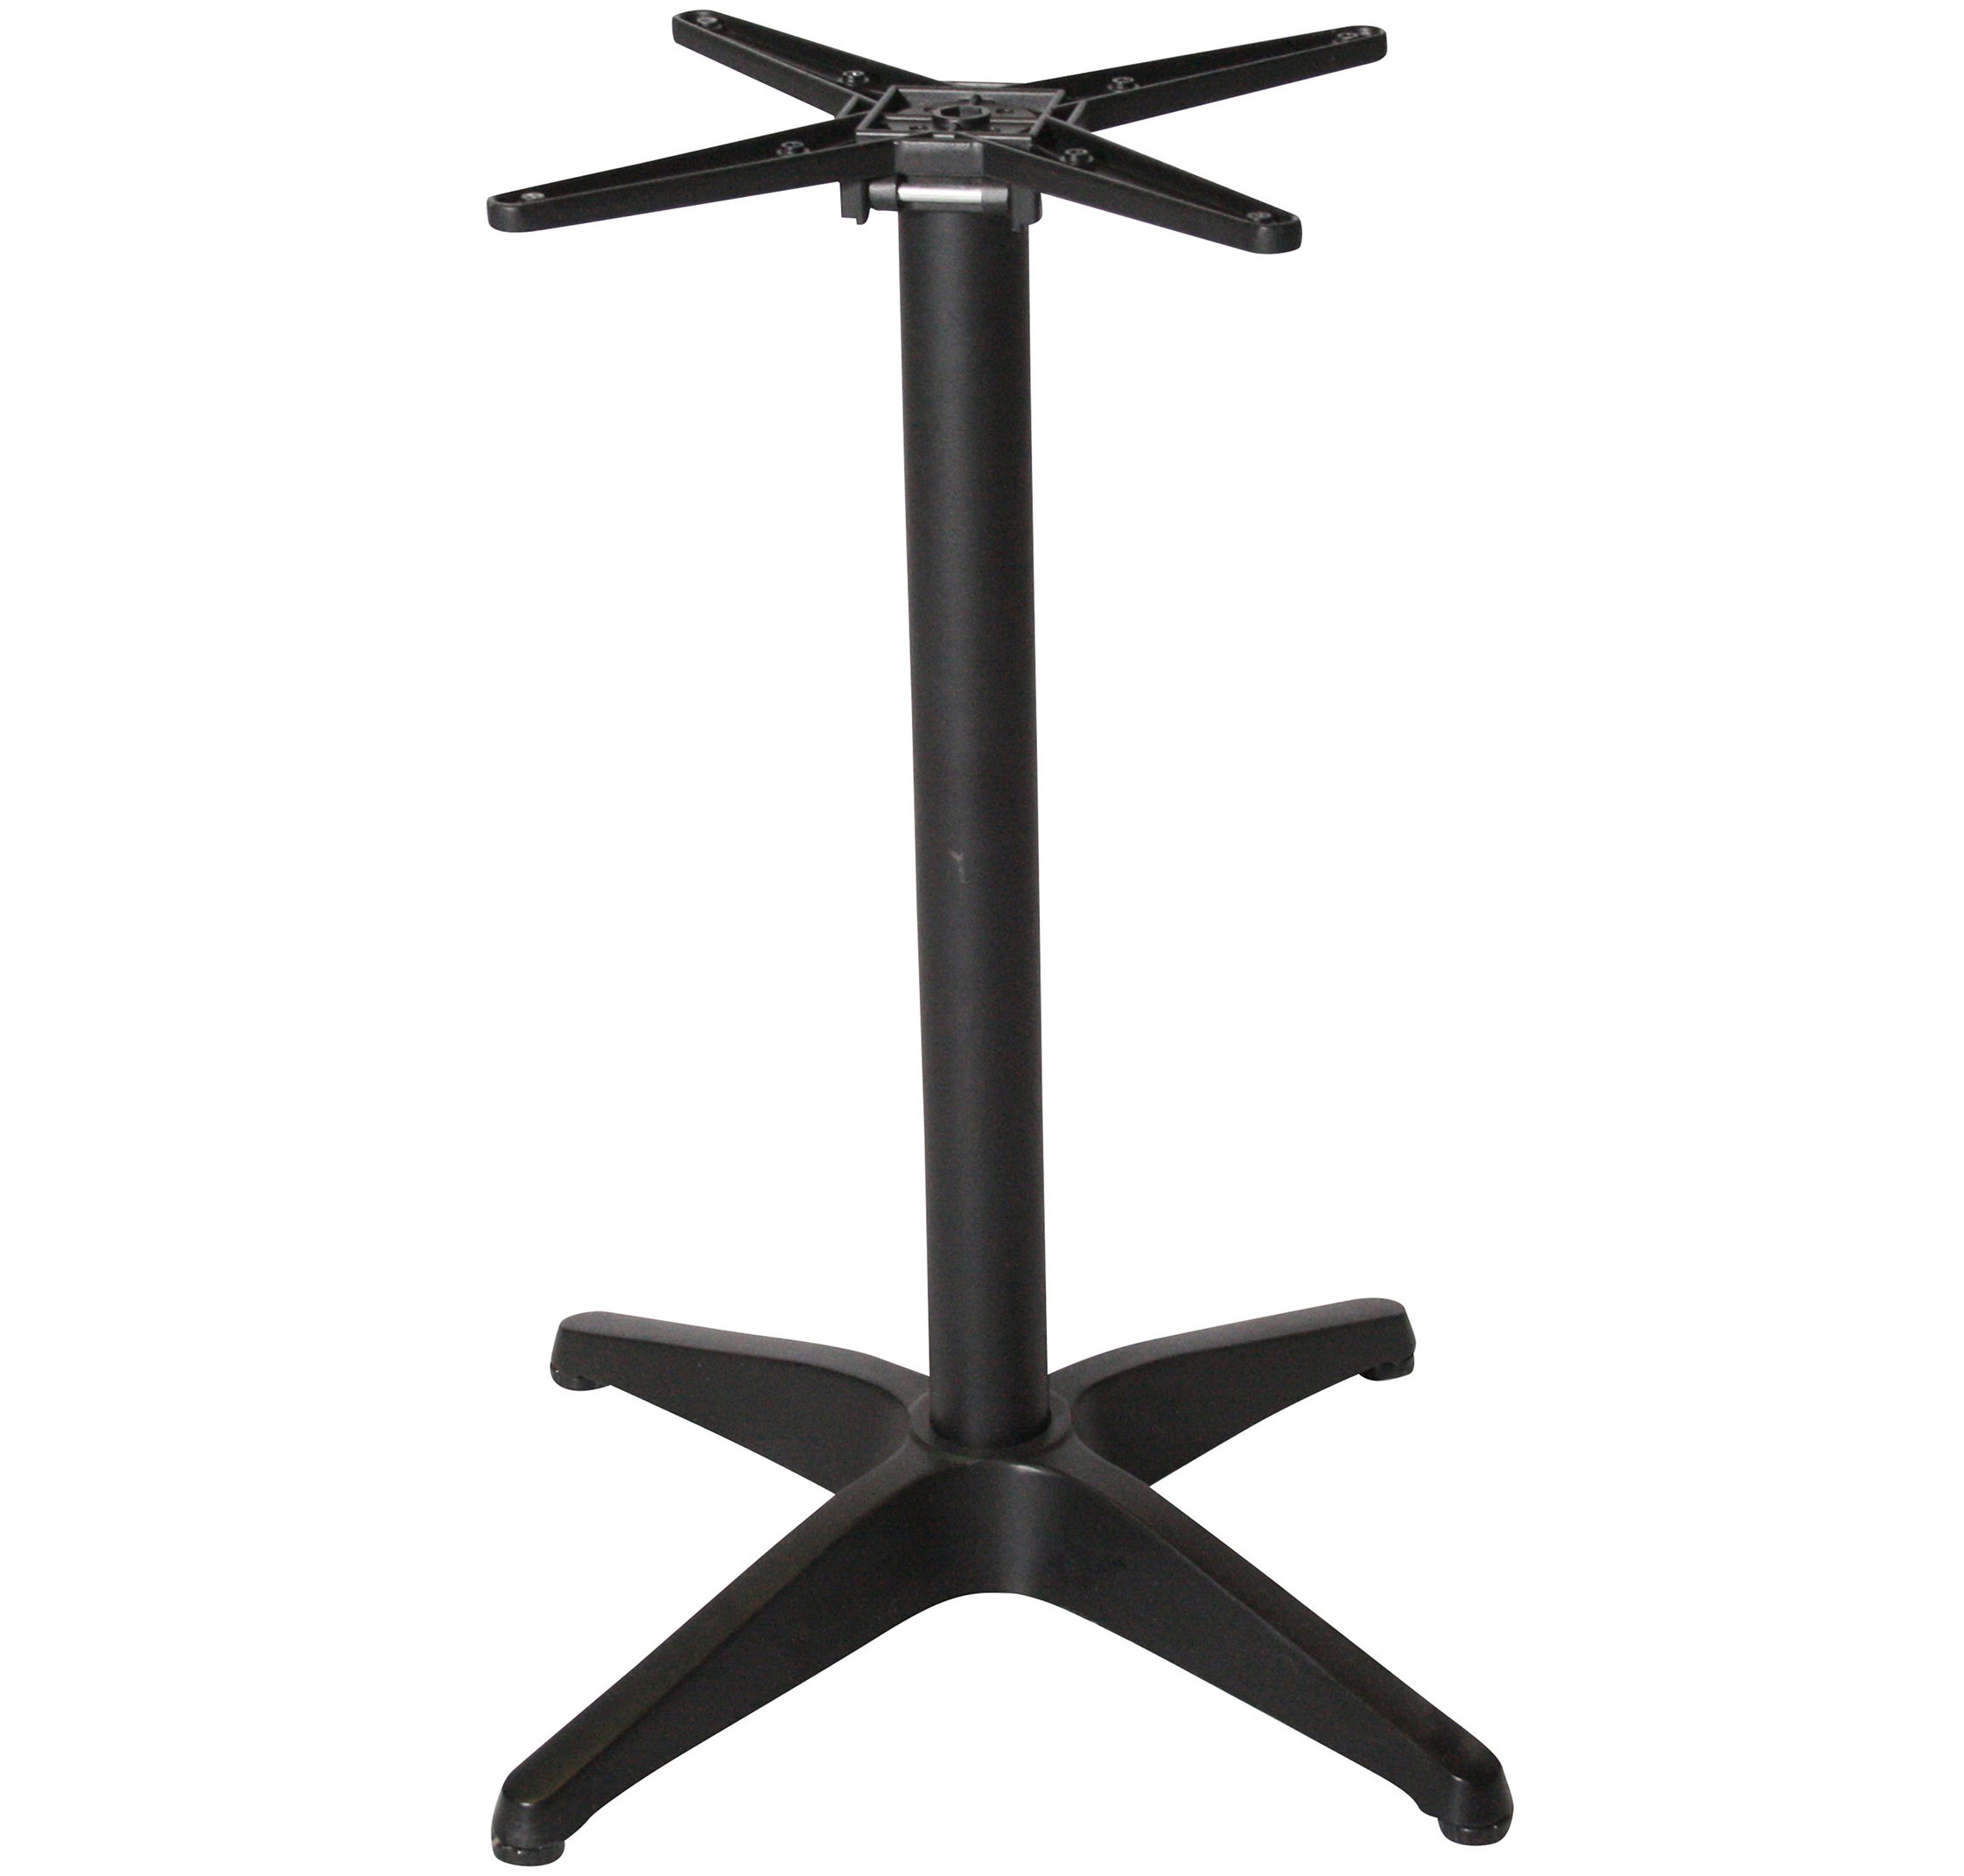 Bistro Cross table base